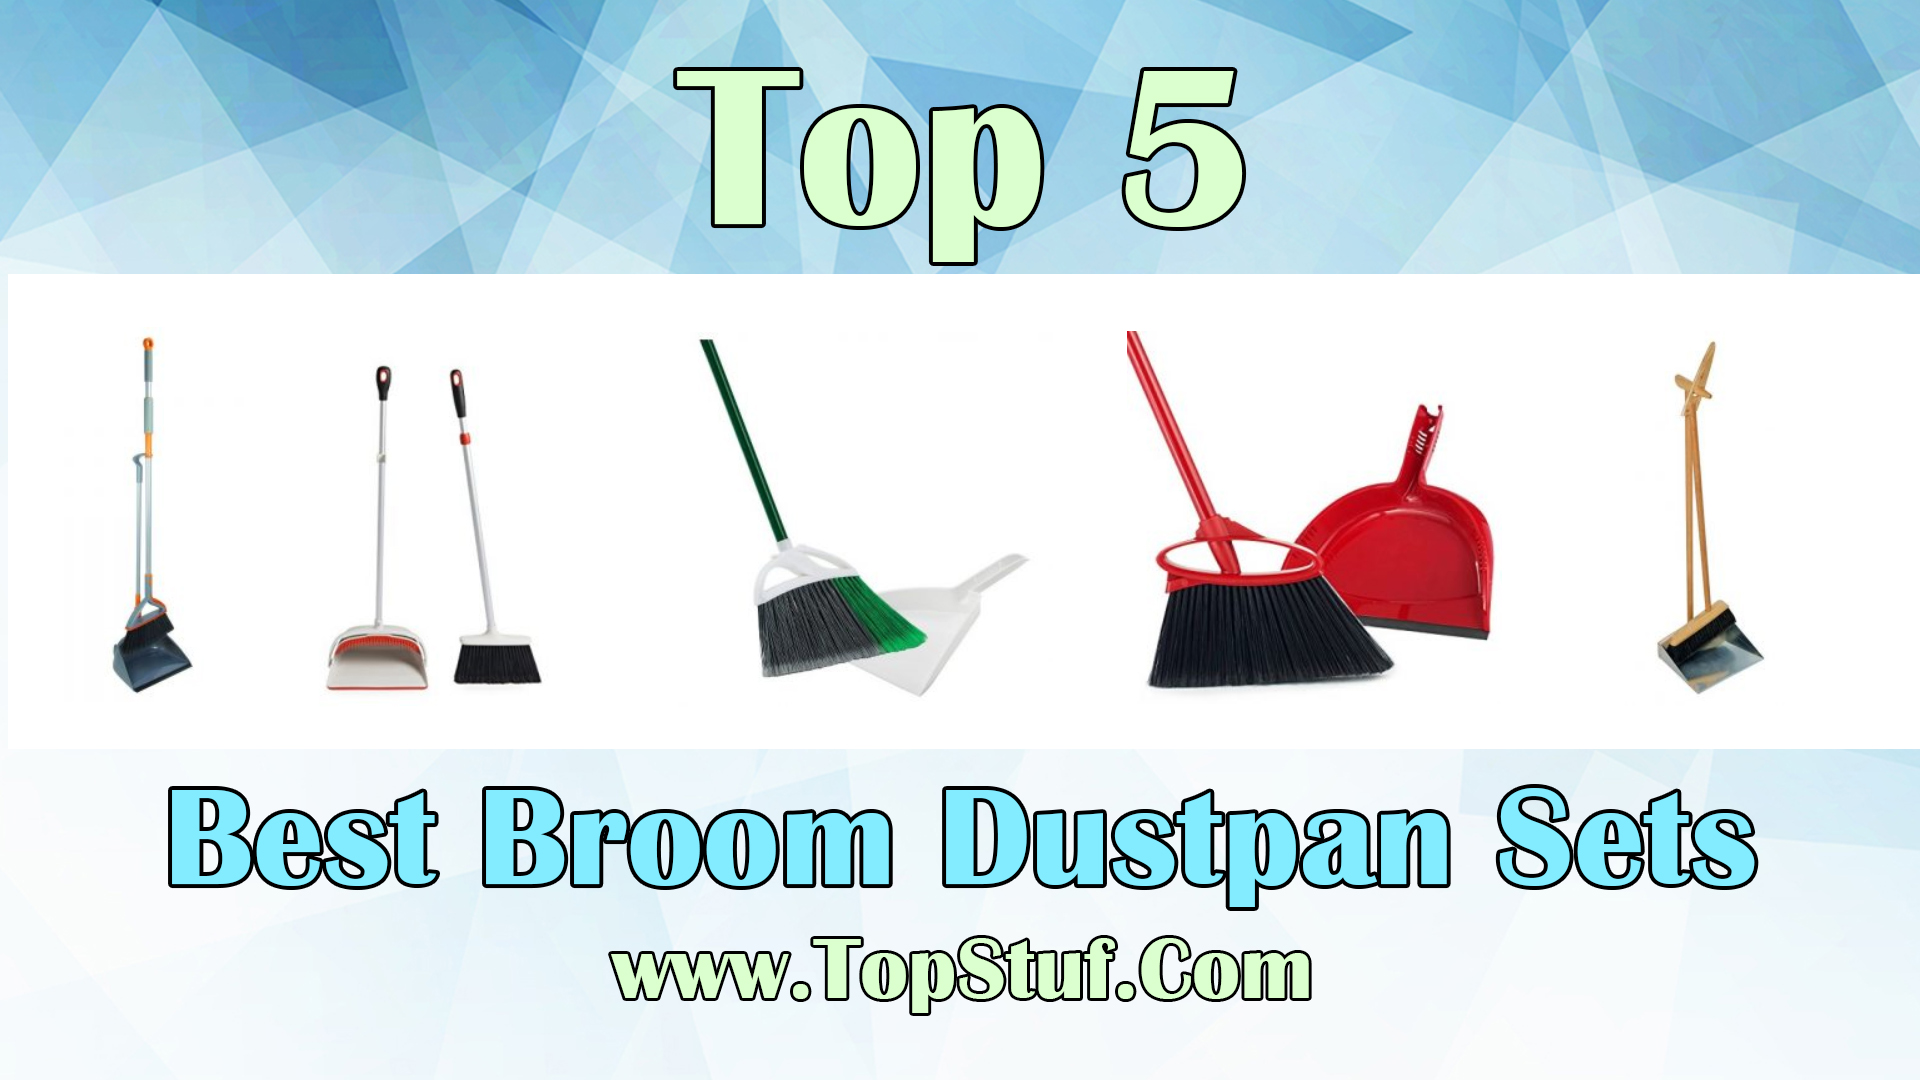 Best Broom Dustpan Sets